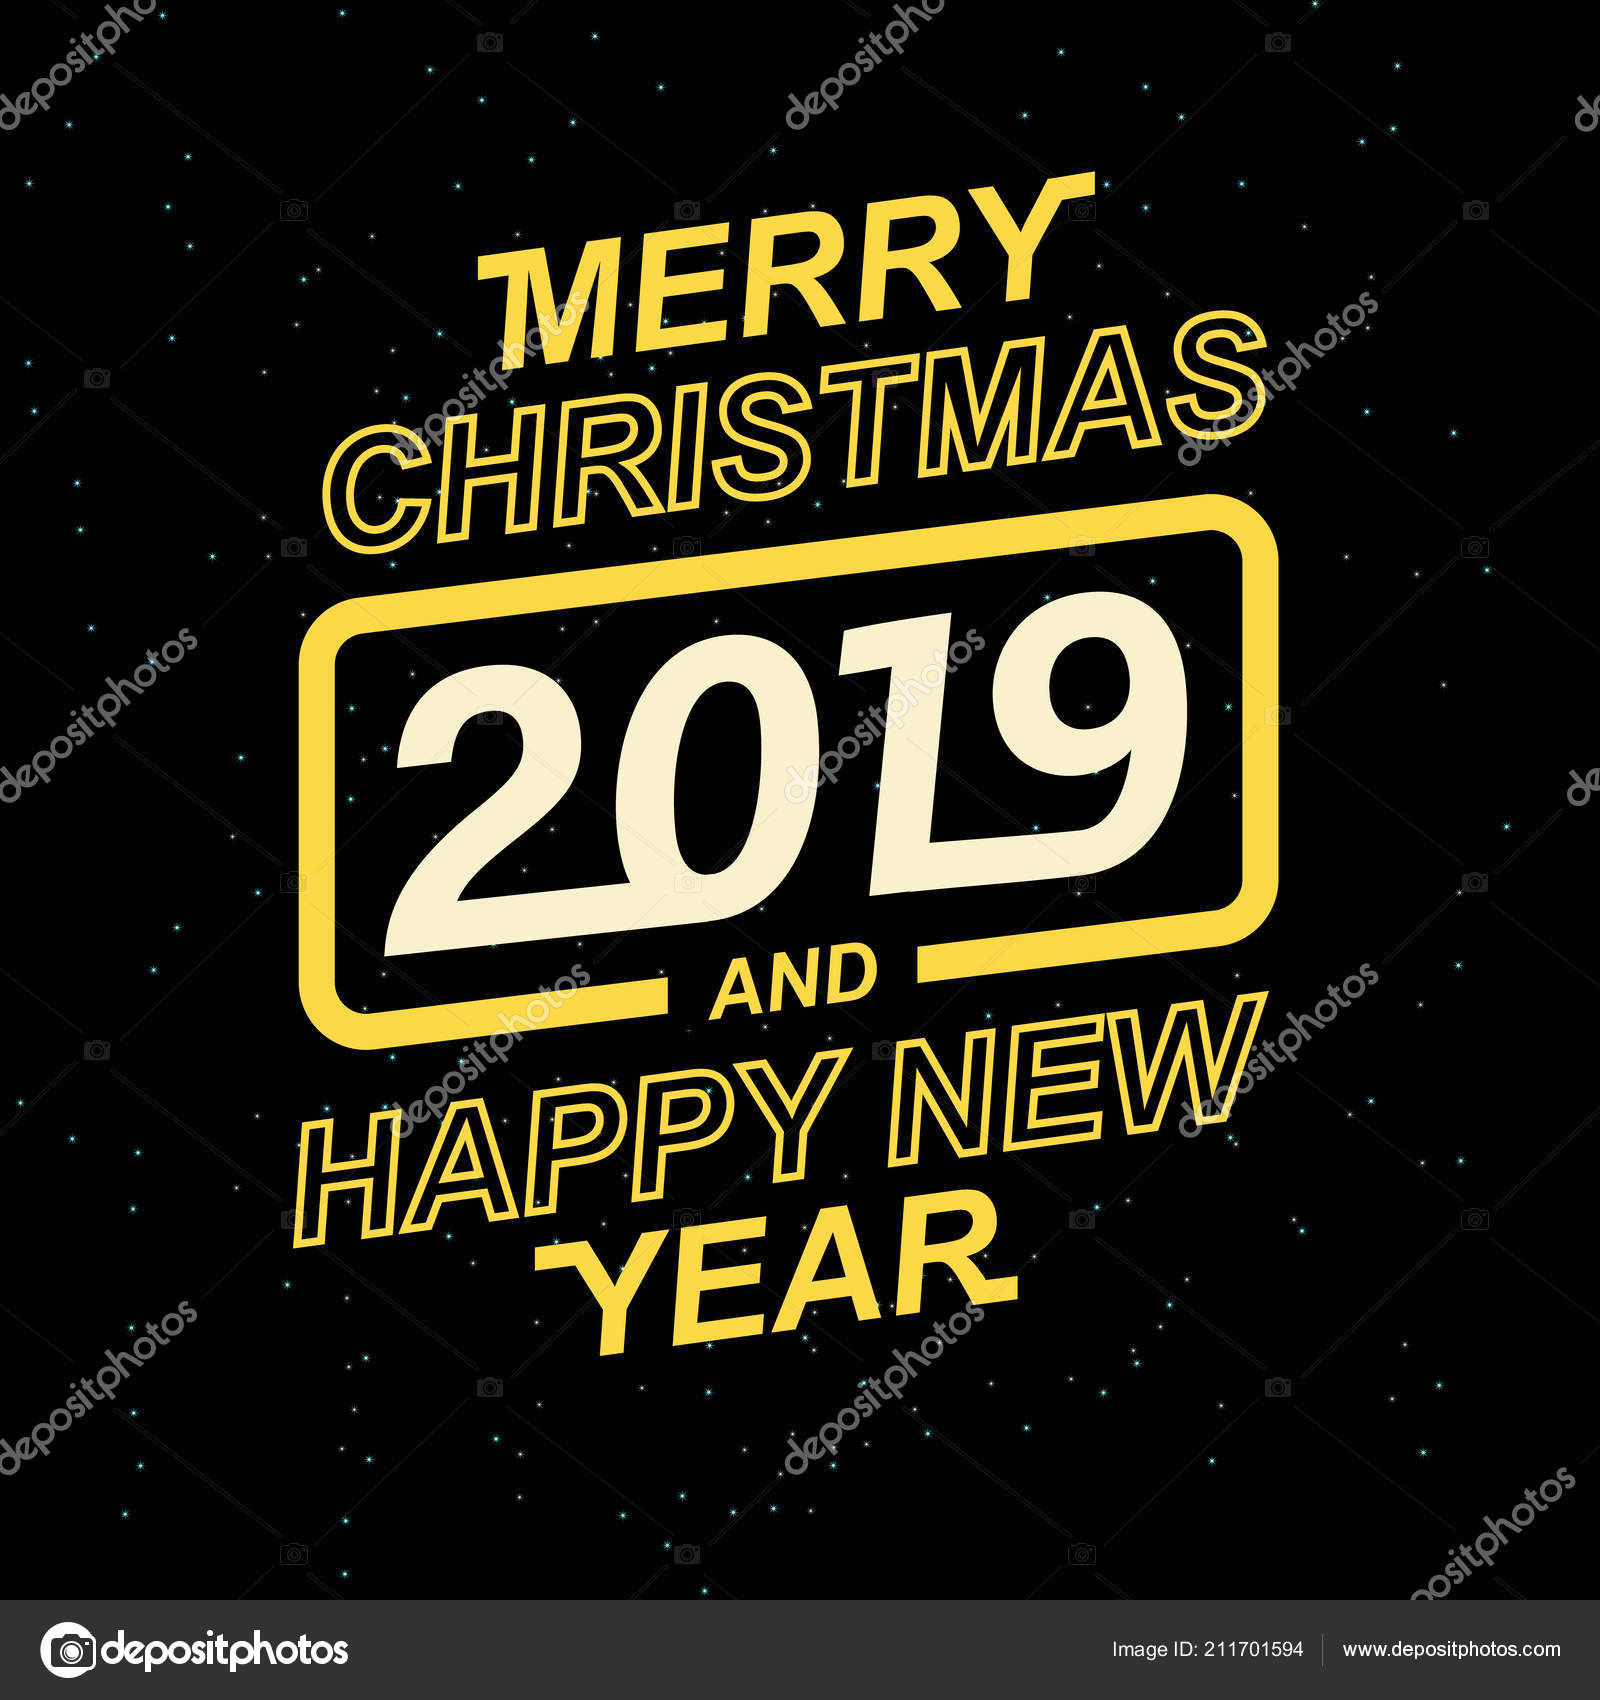 2019 merry christmas and happy new year for your seasonal leaflets 2019 merry christmas and happy new year for your seasonal leaflets and greeting cards or christmas m4hsunfo